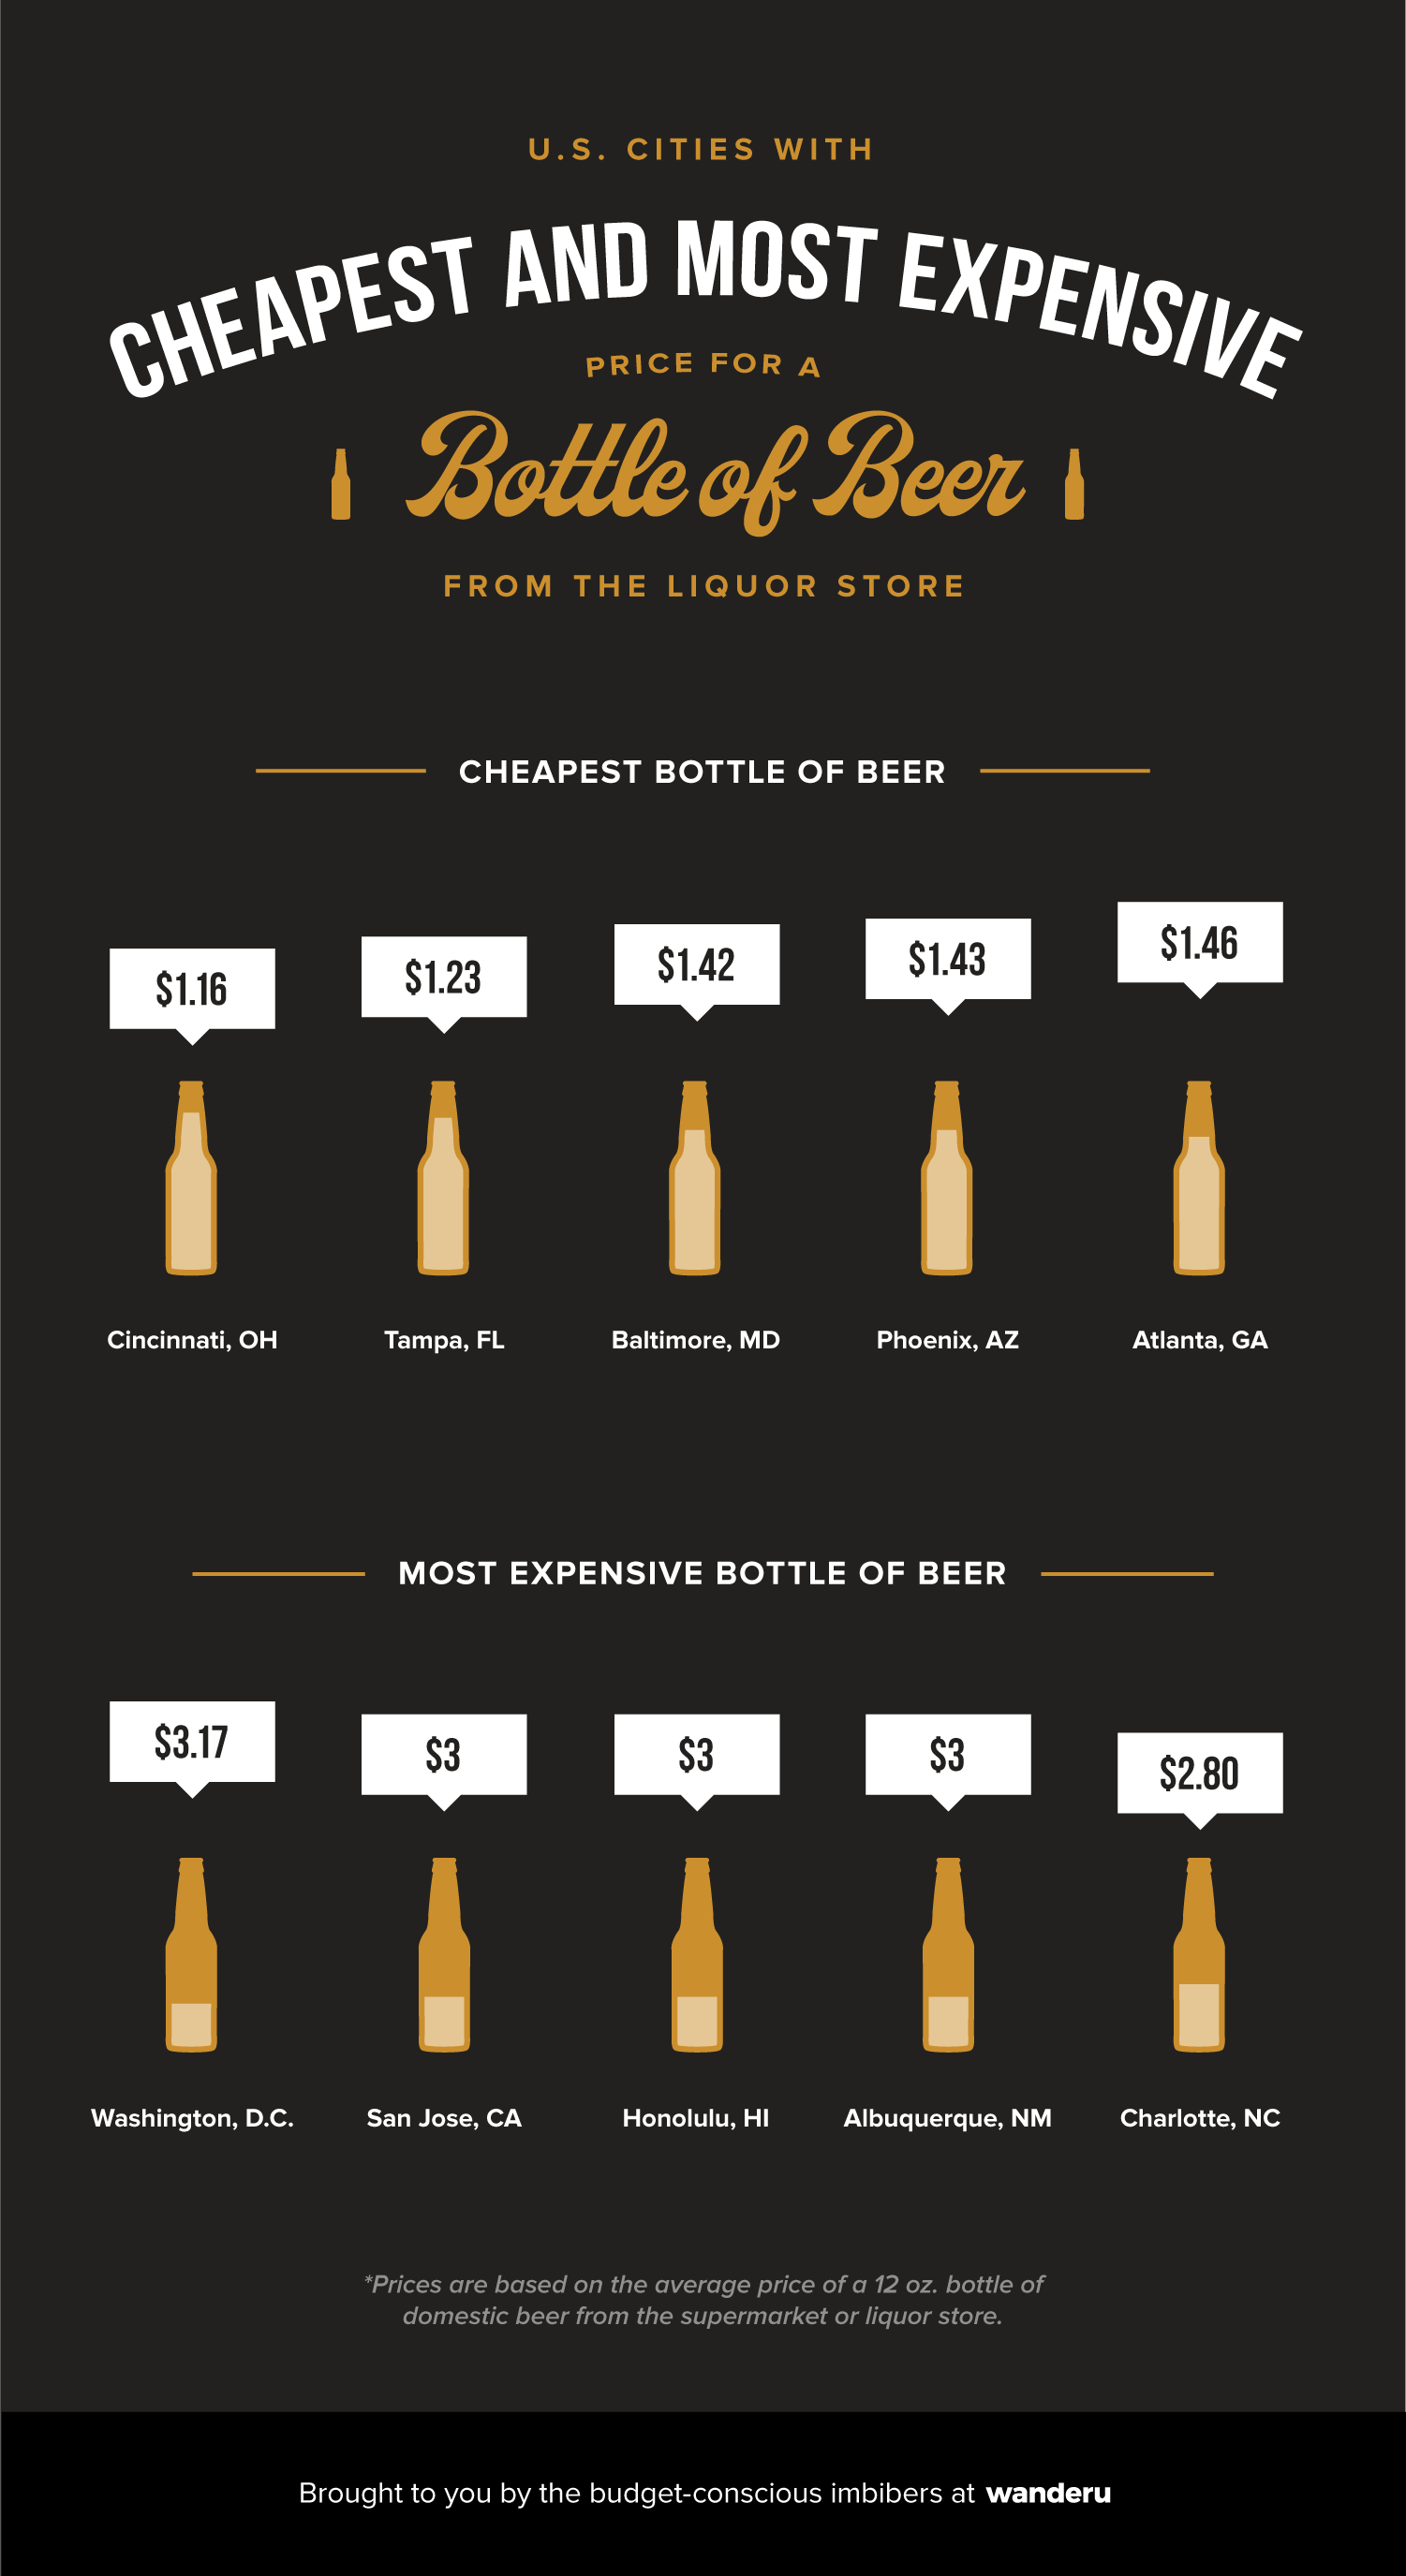 Infographic shows the 5 cheapest and 5 most expensive cities in which to buy a domestic bottle of beer at the store.